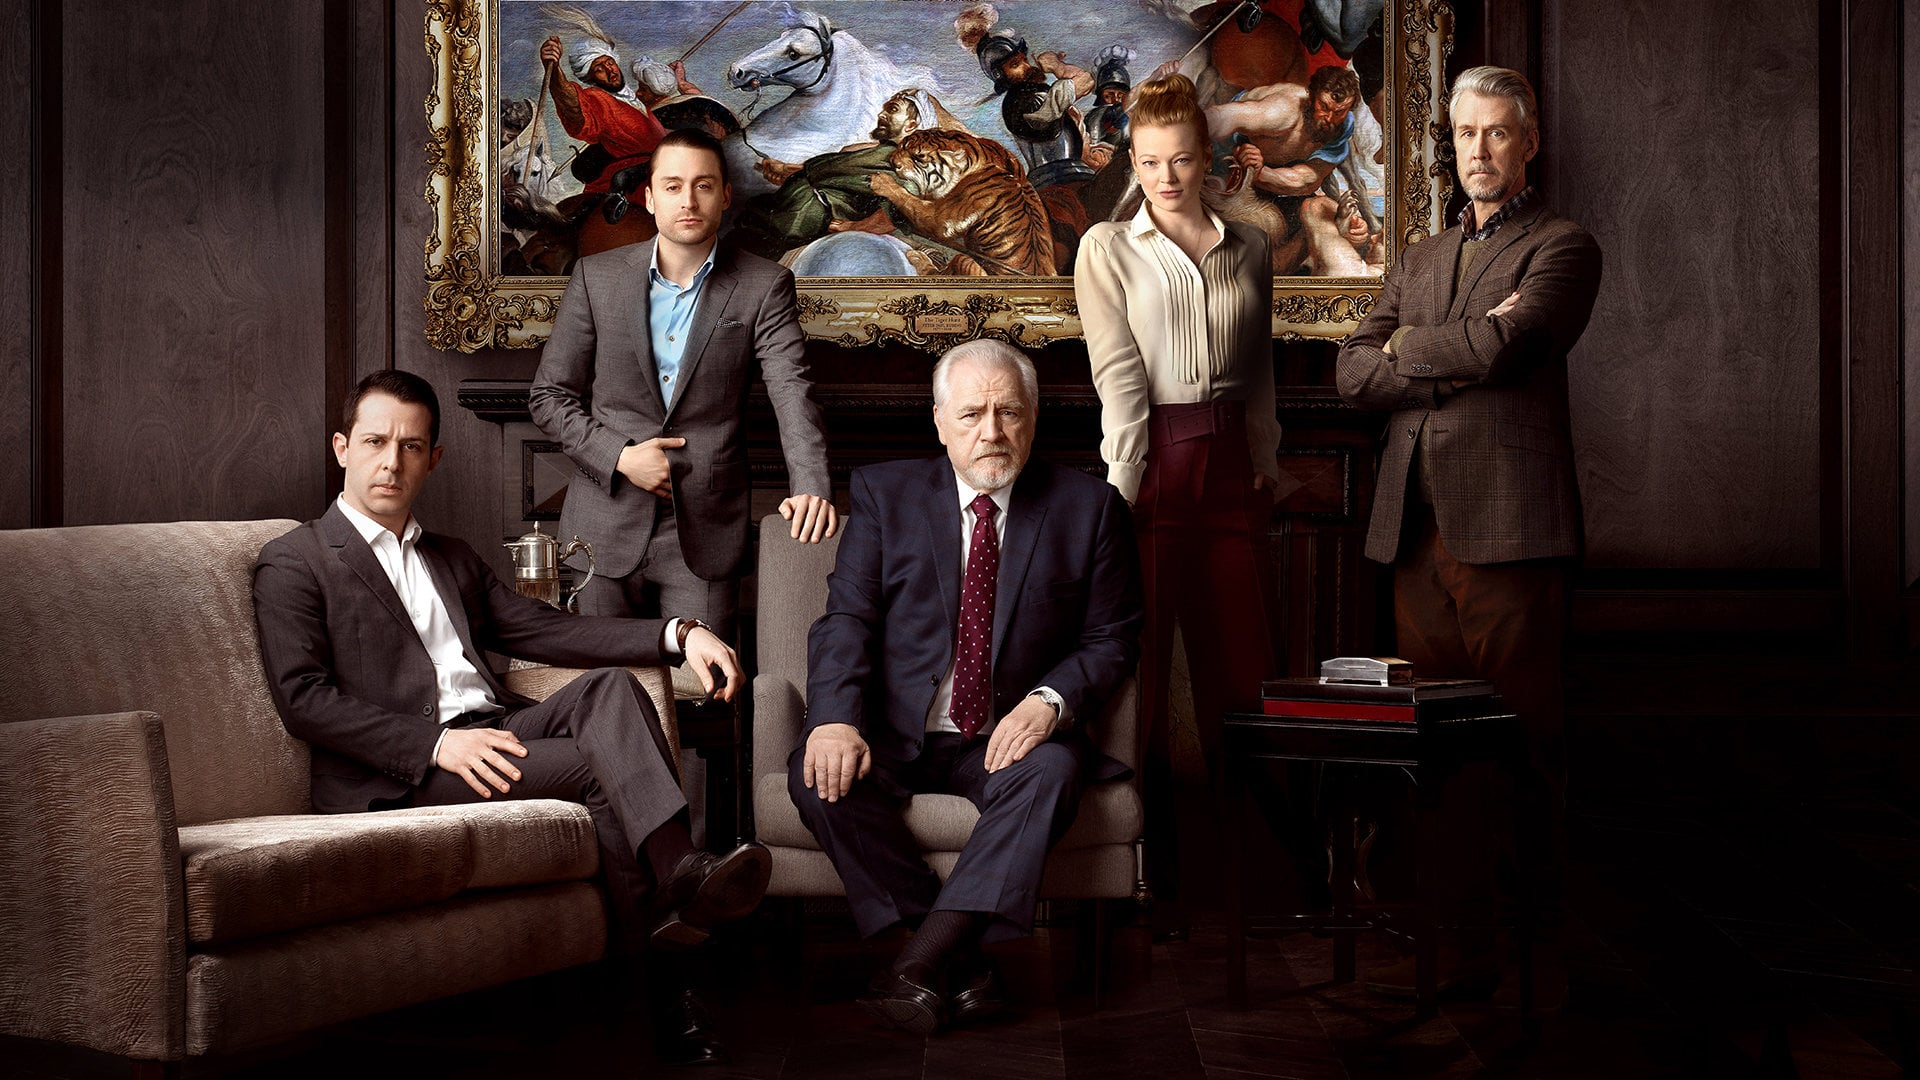 the Roy family on Succession: Kendall (seated); Roman (standing); the patriarch, Logan (seated); Siobhan (standing); Connor (standing)